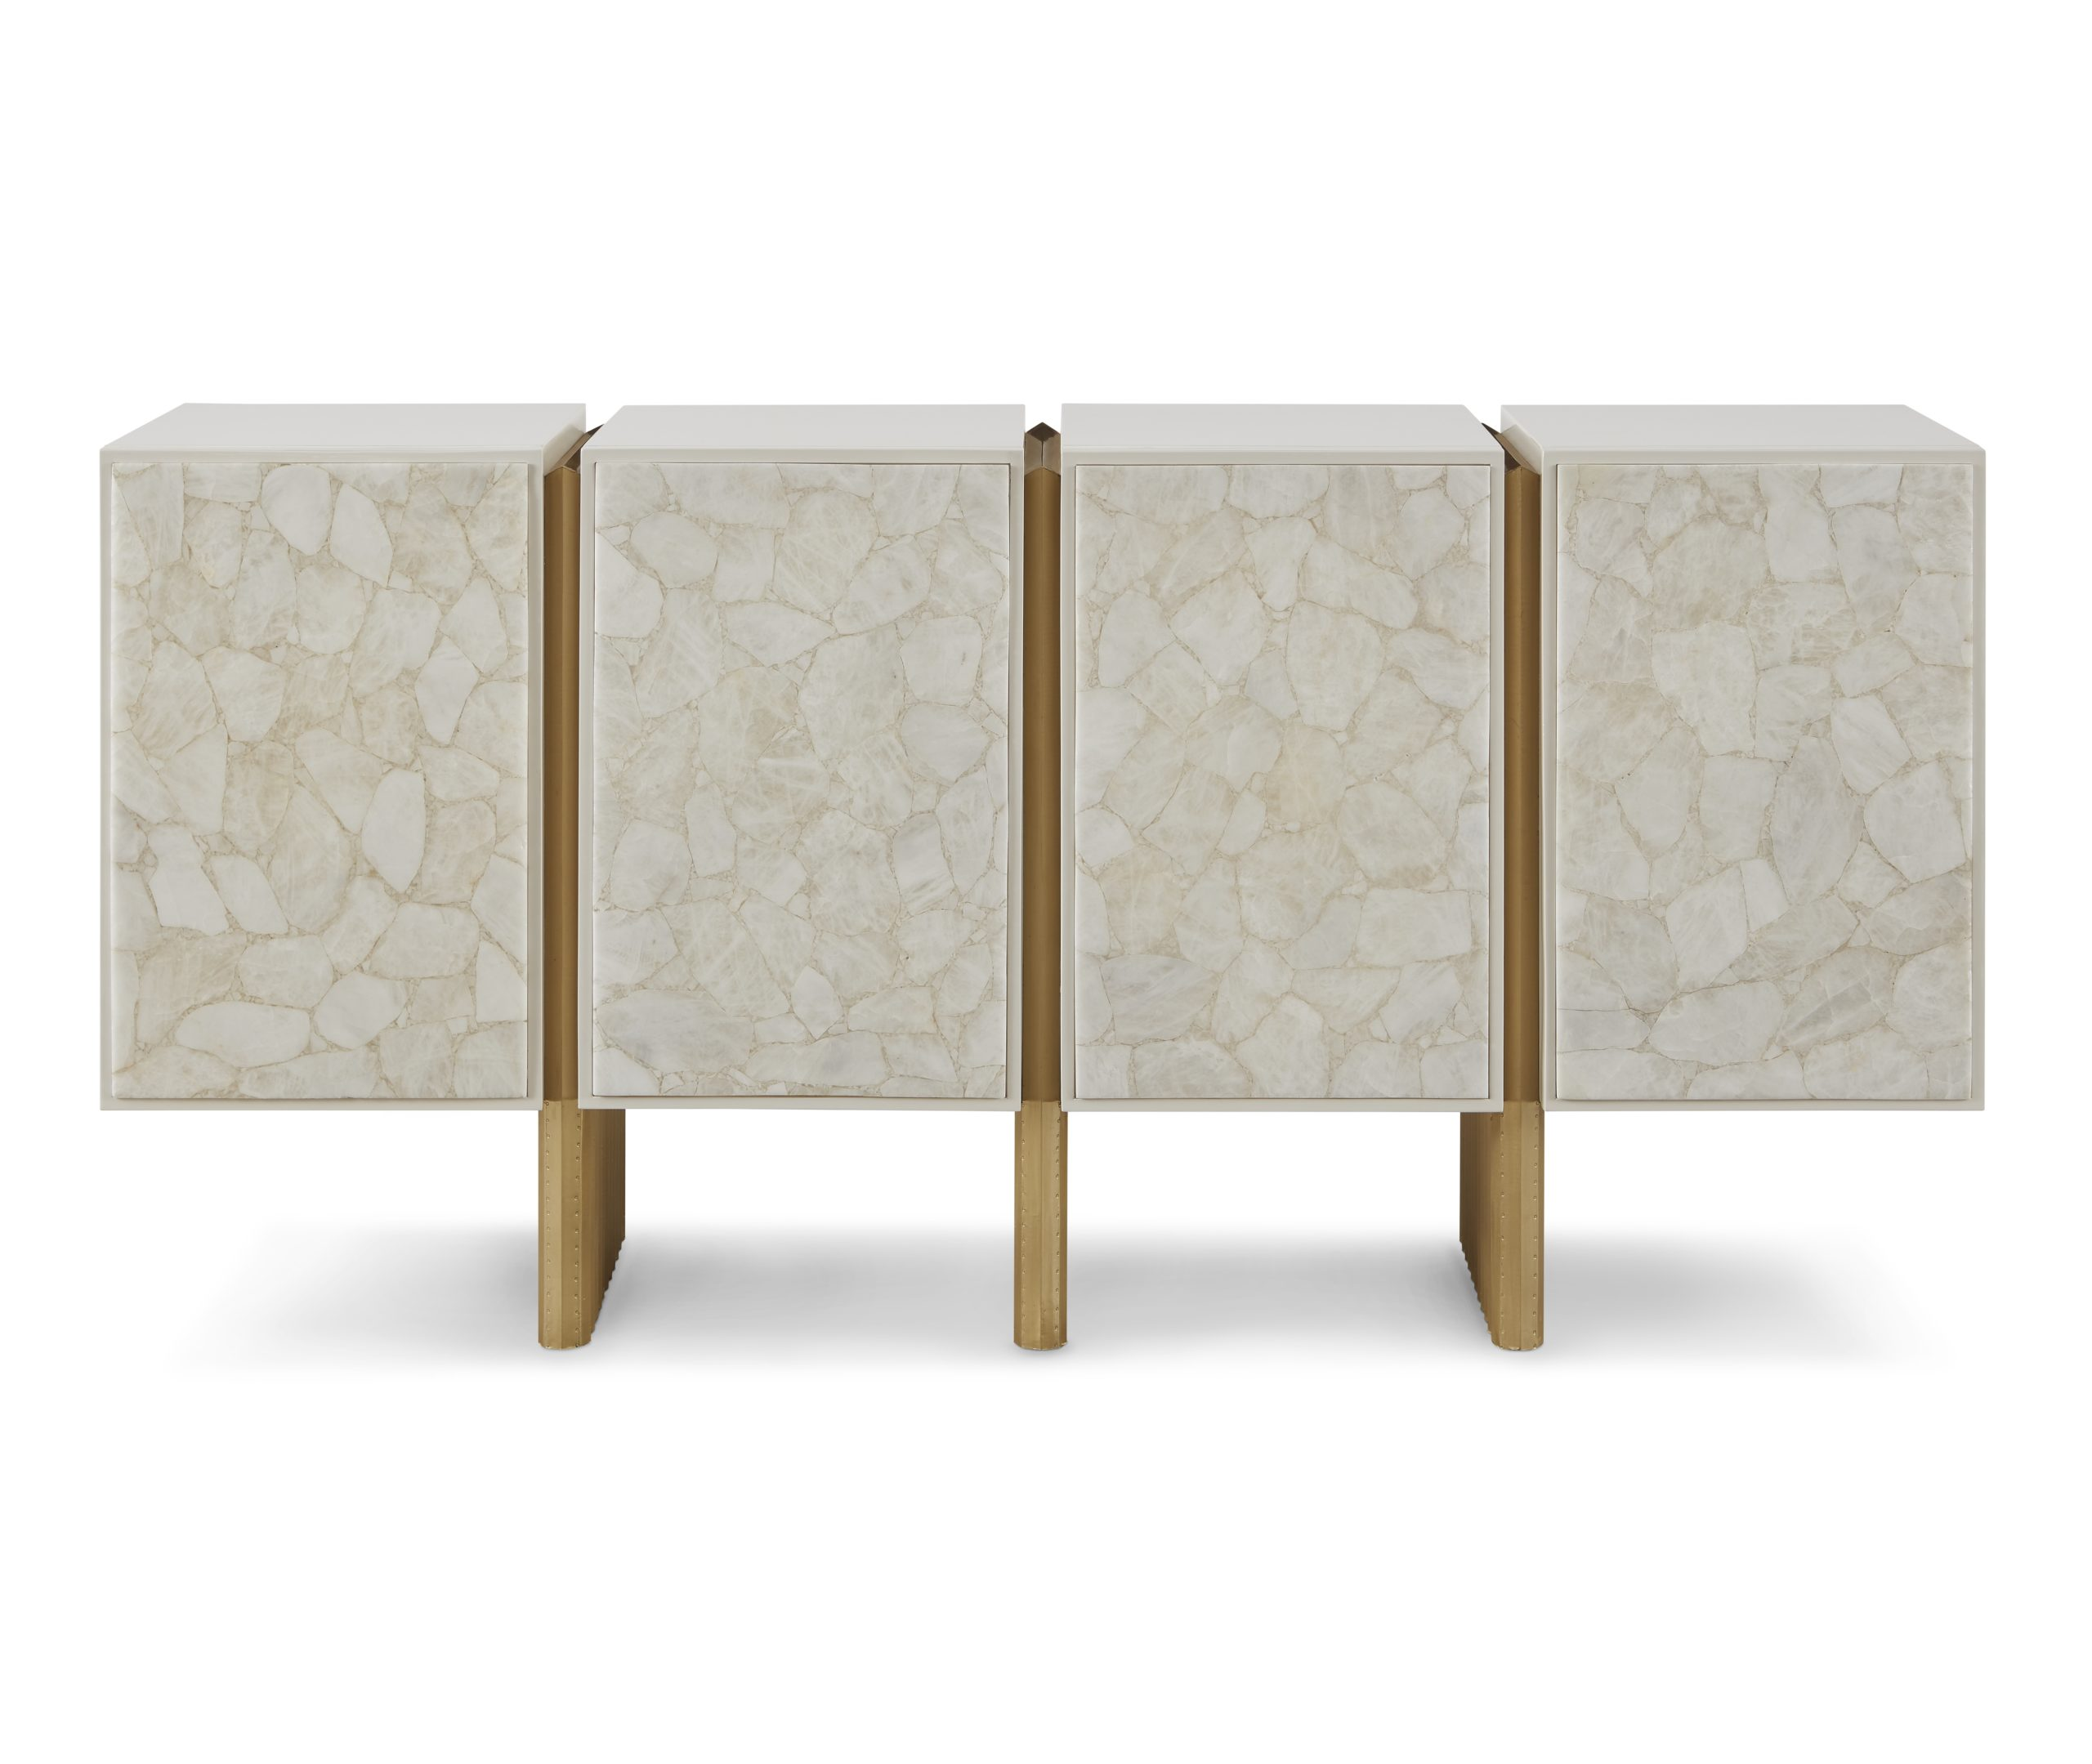 Baker_products_WNWN_kira_credenza_BAA3028_FRONT-scaled-1